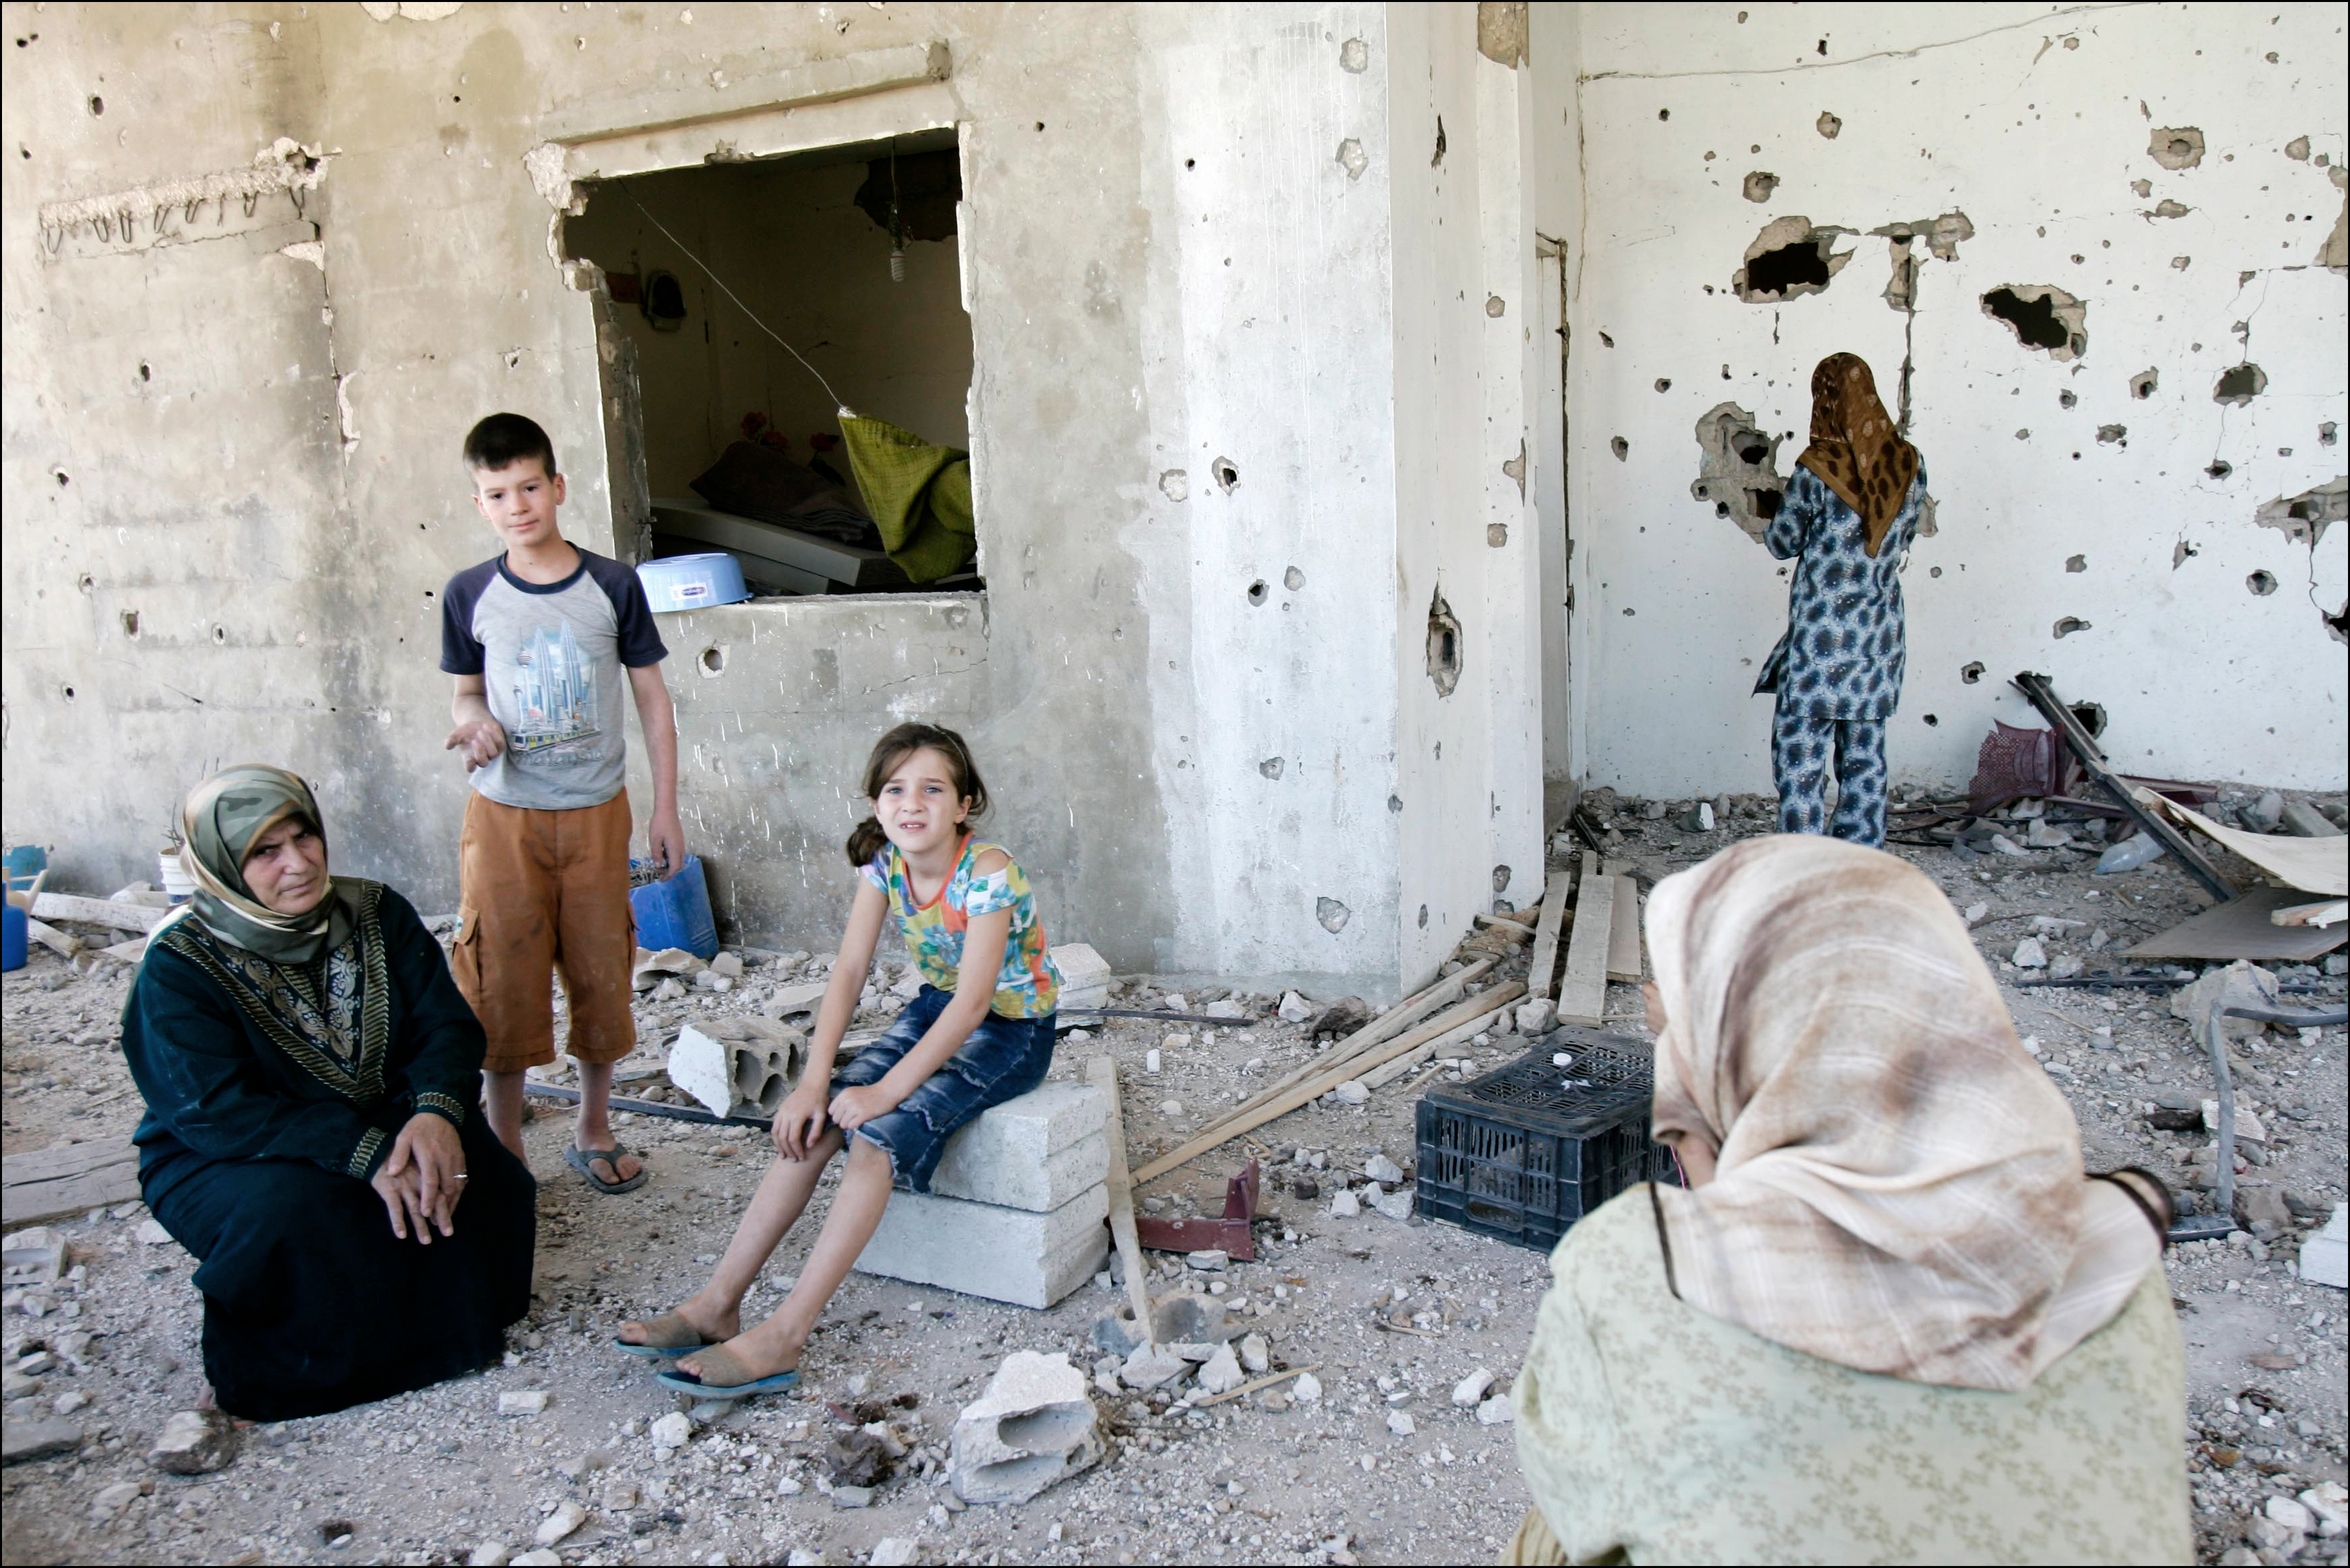 Lebanese refugees return to their home in Qana, badly damaged by heavy Irsaeli shelling, after one month of exile. Many Lebanese celebrated what they perceived as the win of Hizbollah after a month long war with Israel that lead to over 1000 civilian deaths in Lebanon and vast destruction of the country's infrastructure from heavy Israeli bombardments.